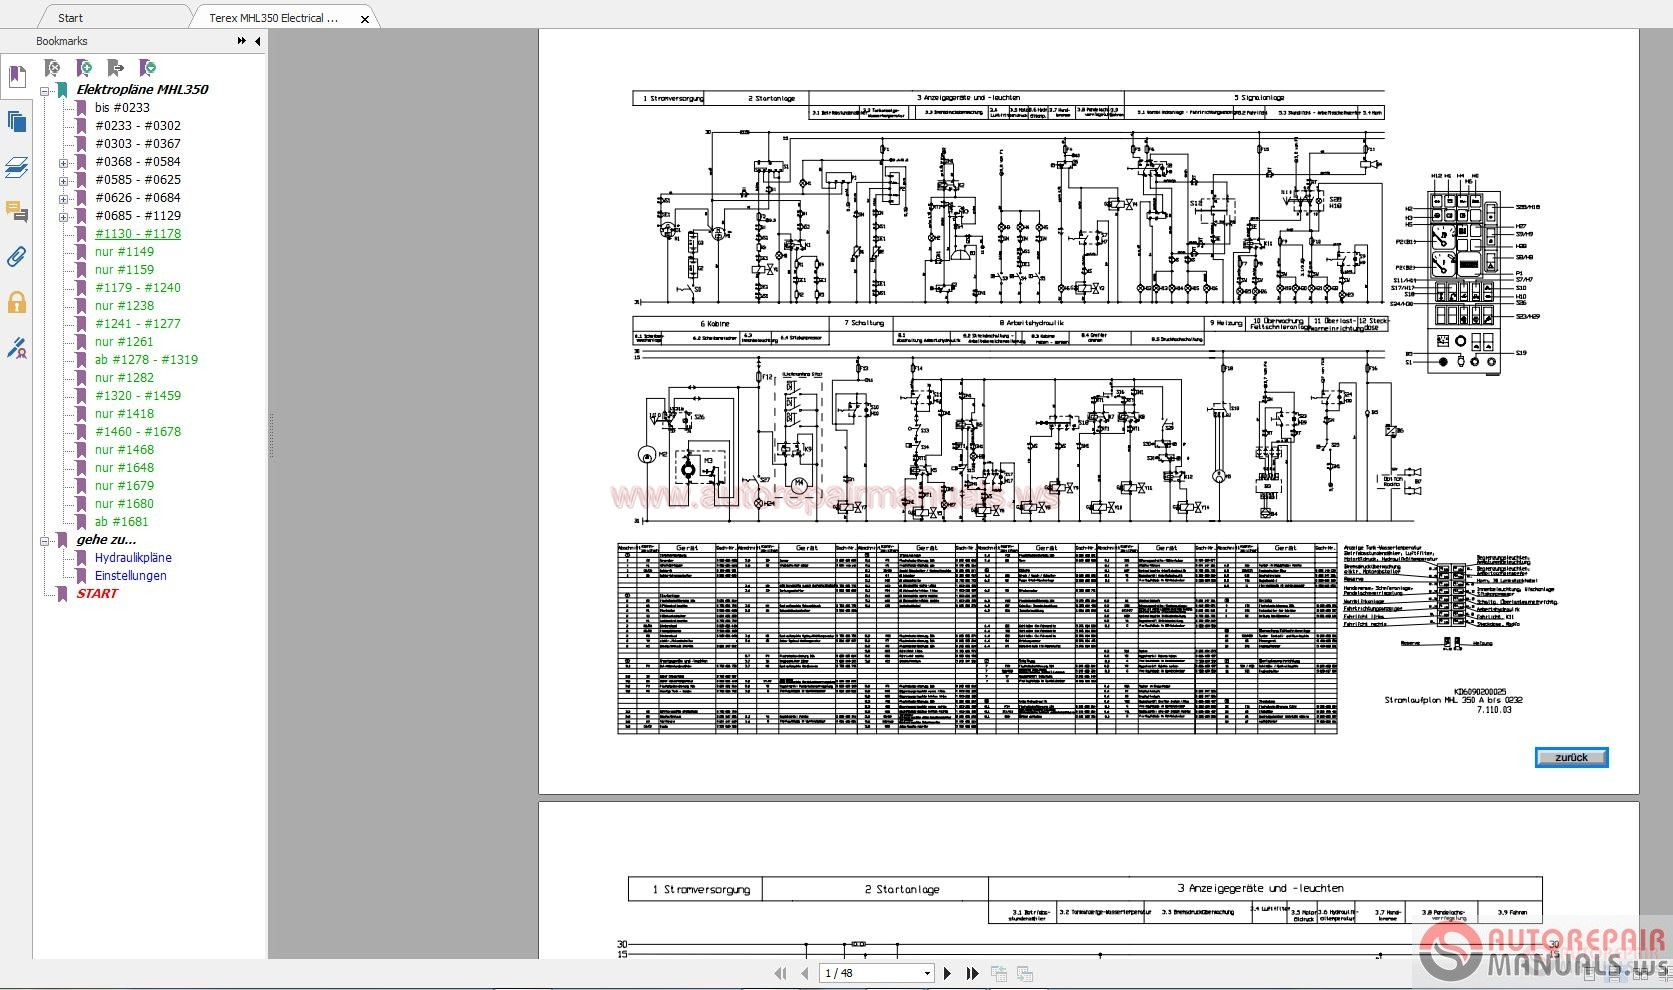 Terex Tb60 Repair Manual Pdf Download Diversityteamorg 867186 Wiring Diagrams Mhl350 Electrical Diagram Auto Forum